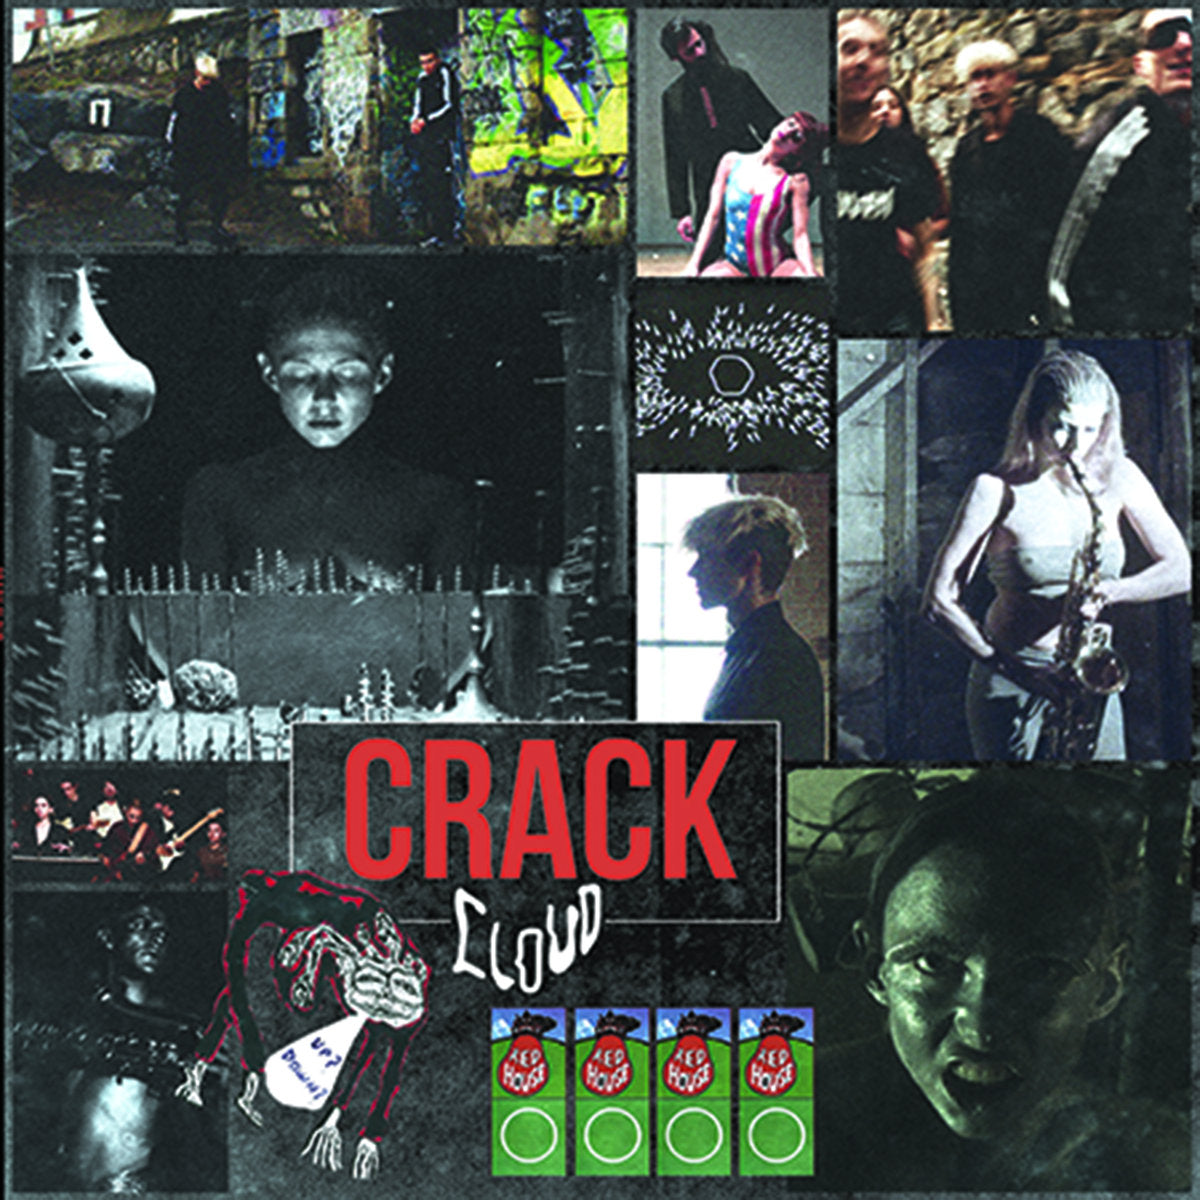 Crack Cloud - s/t LP - Vinyl